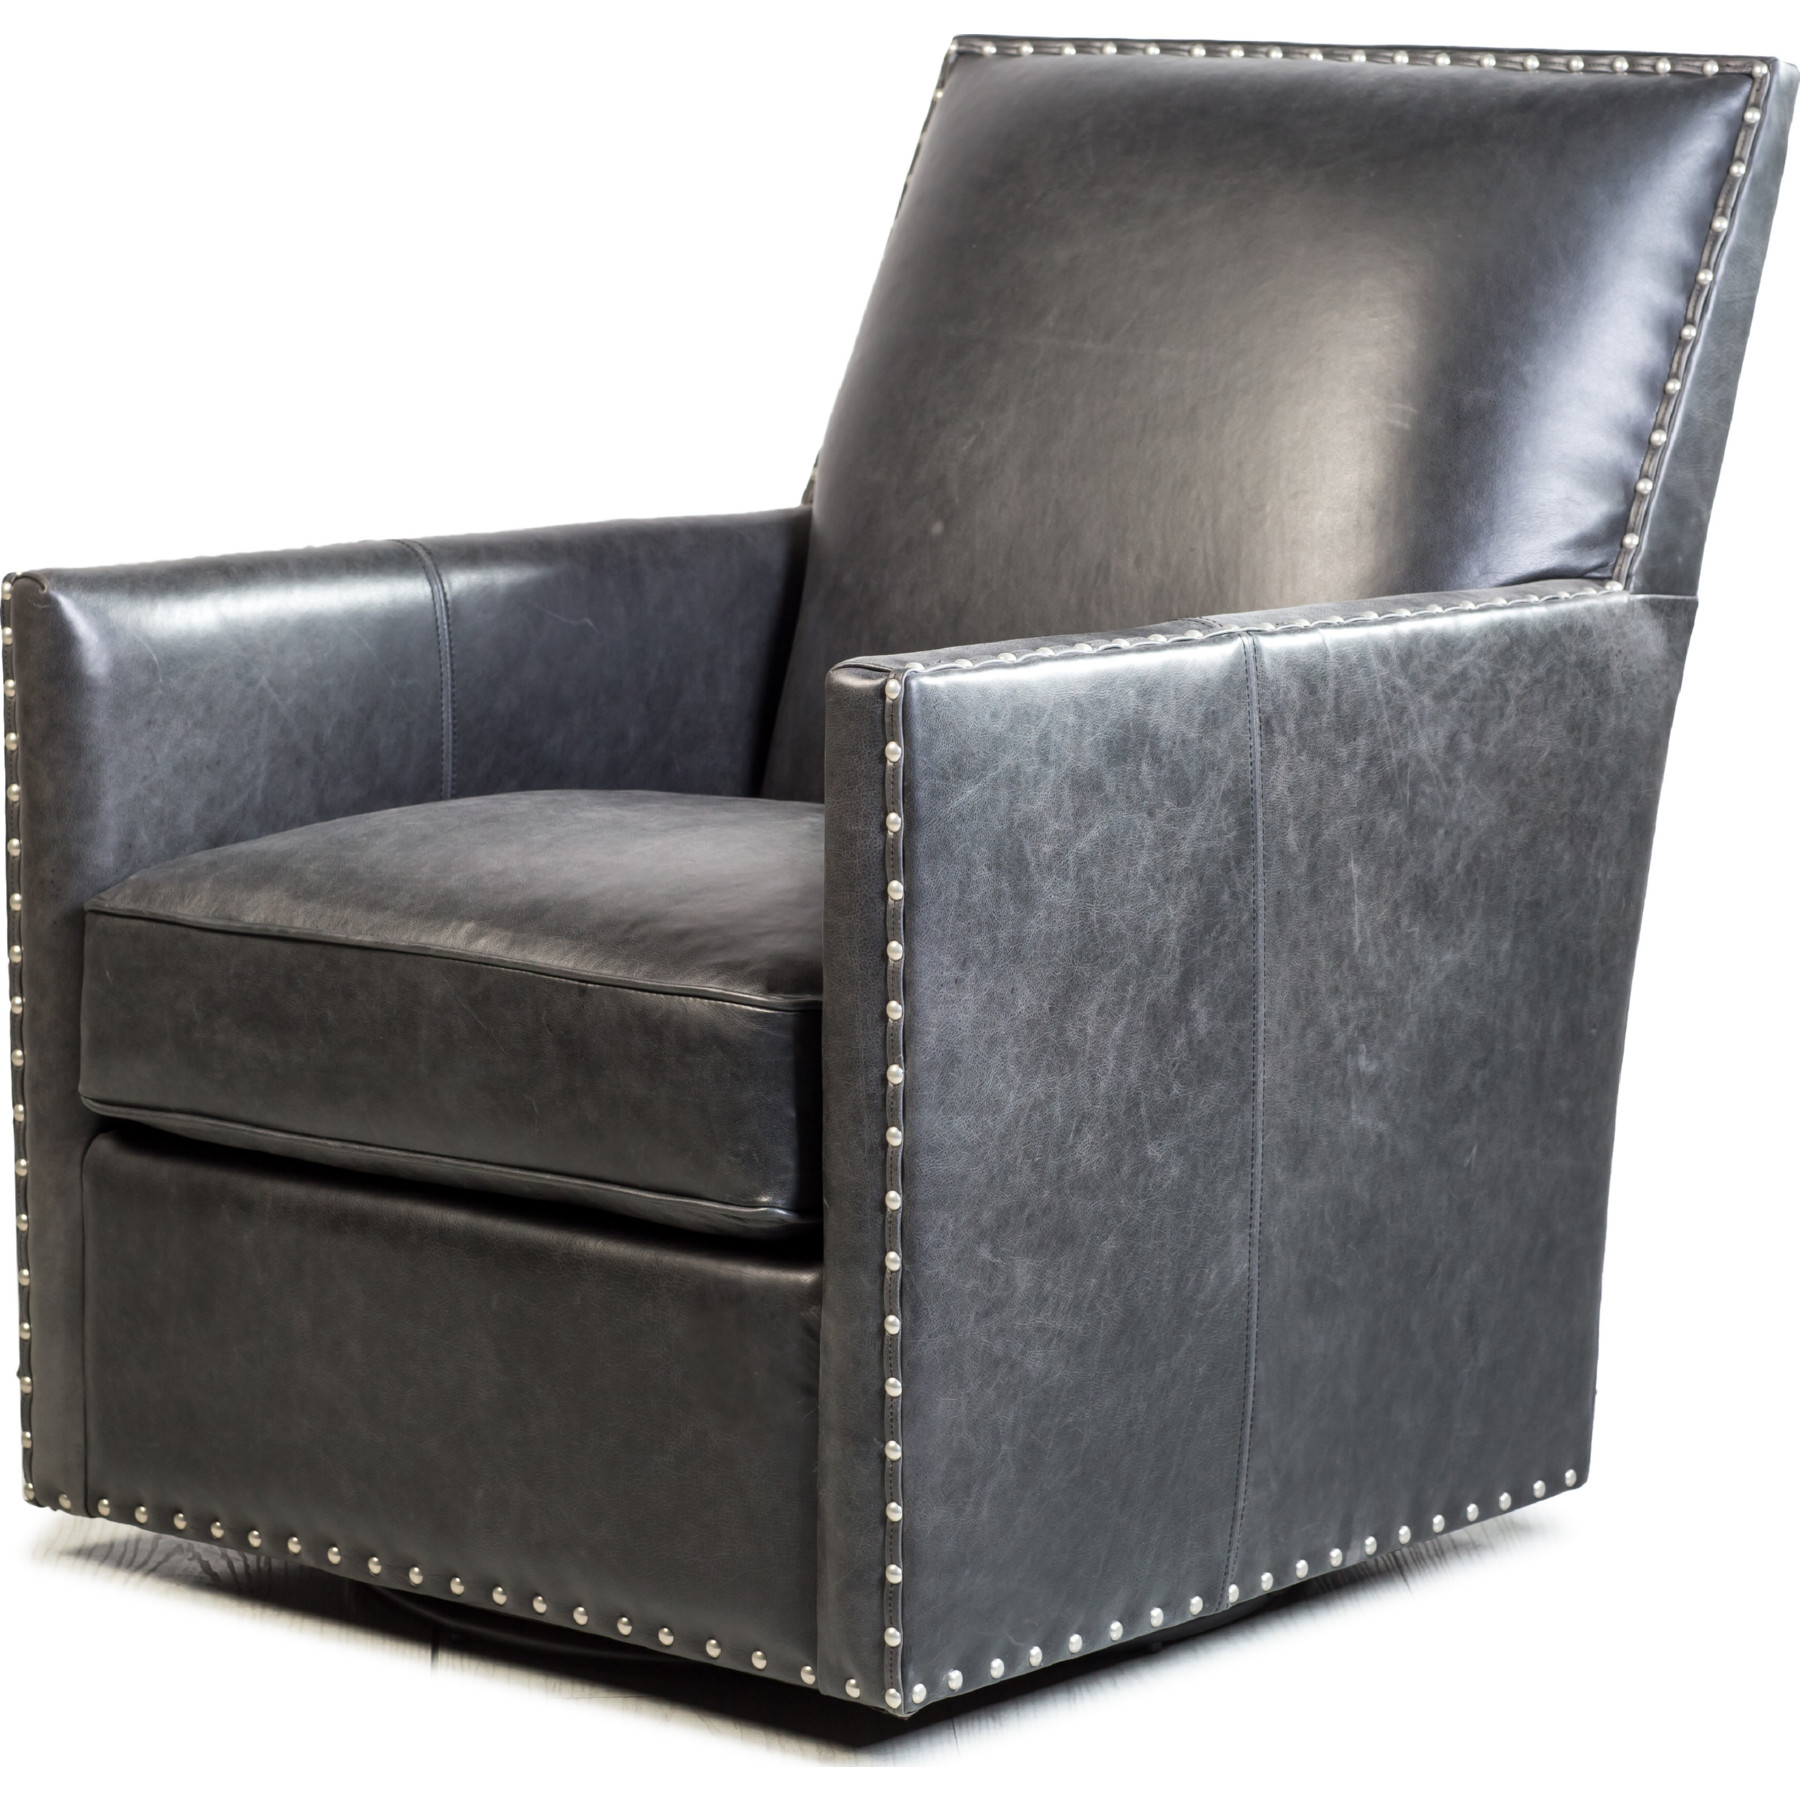 Fantastic Dexter Swivel Accent Chair In Black Top Grain Leather By Spectra Home Furnishings Ncnpc Chair Design For Home Ncnpcorg